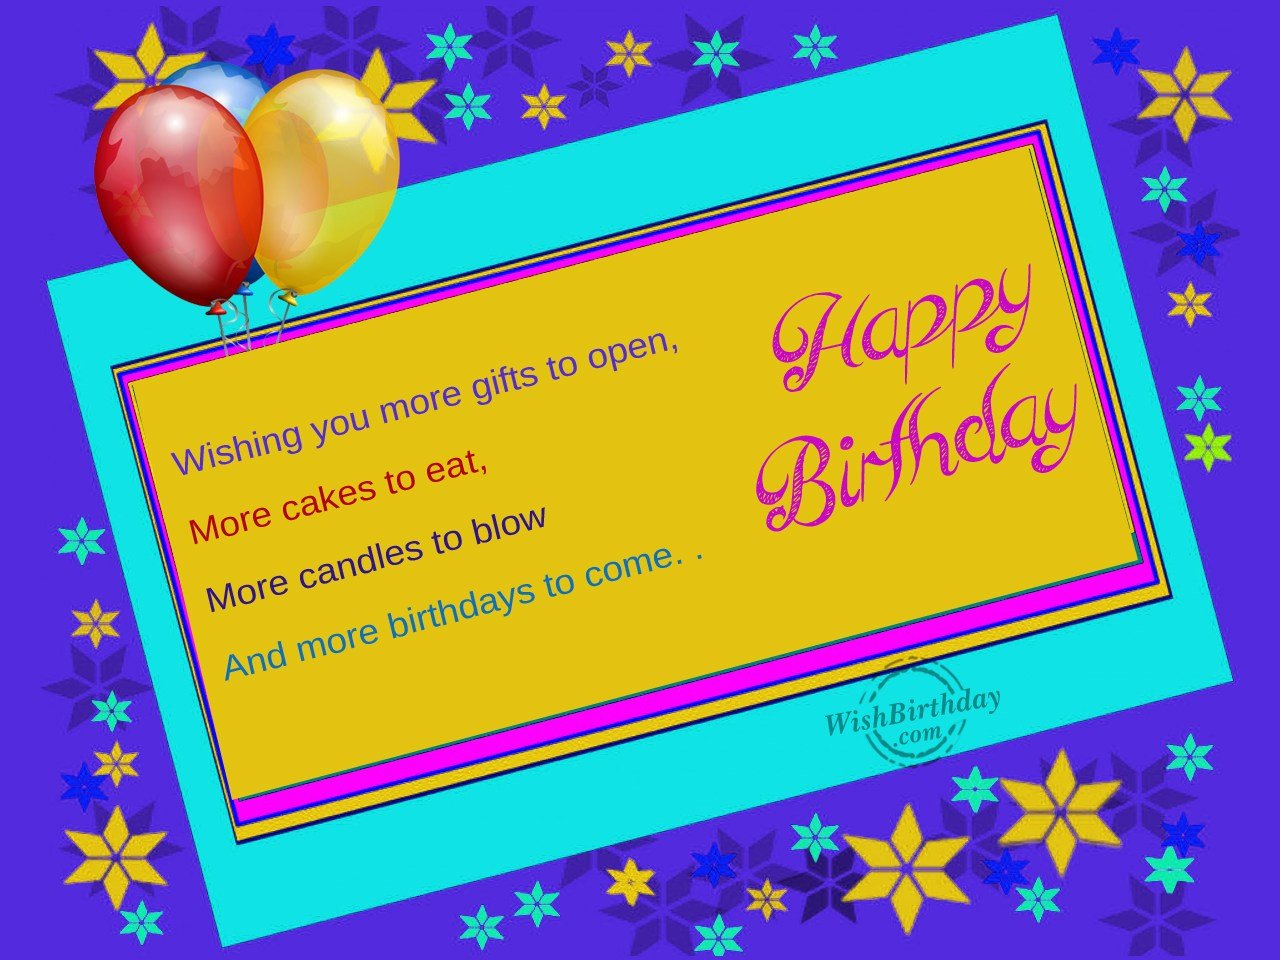 Birthday Wishes With Balloons : Birthday Wishes With Balloons - Birthday Cards, Greetings